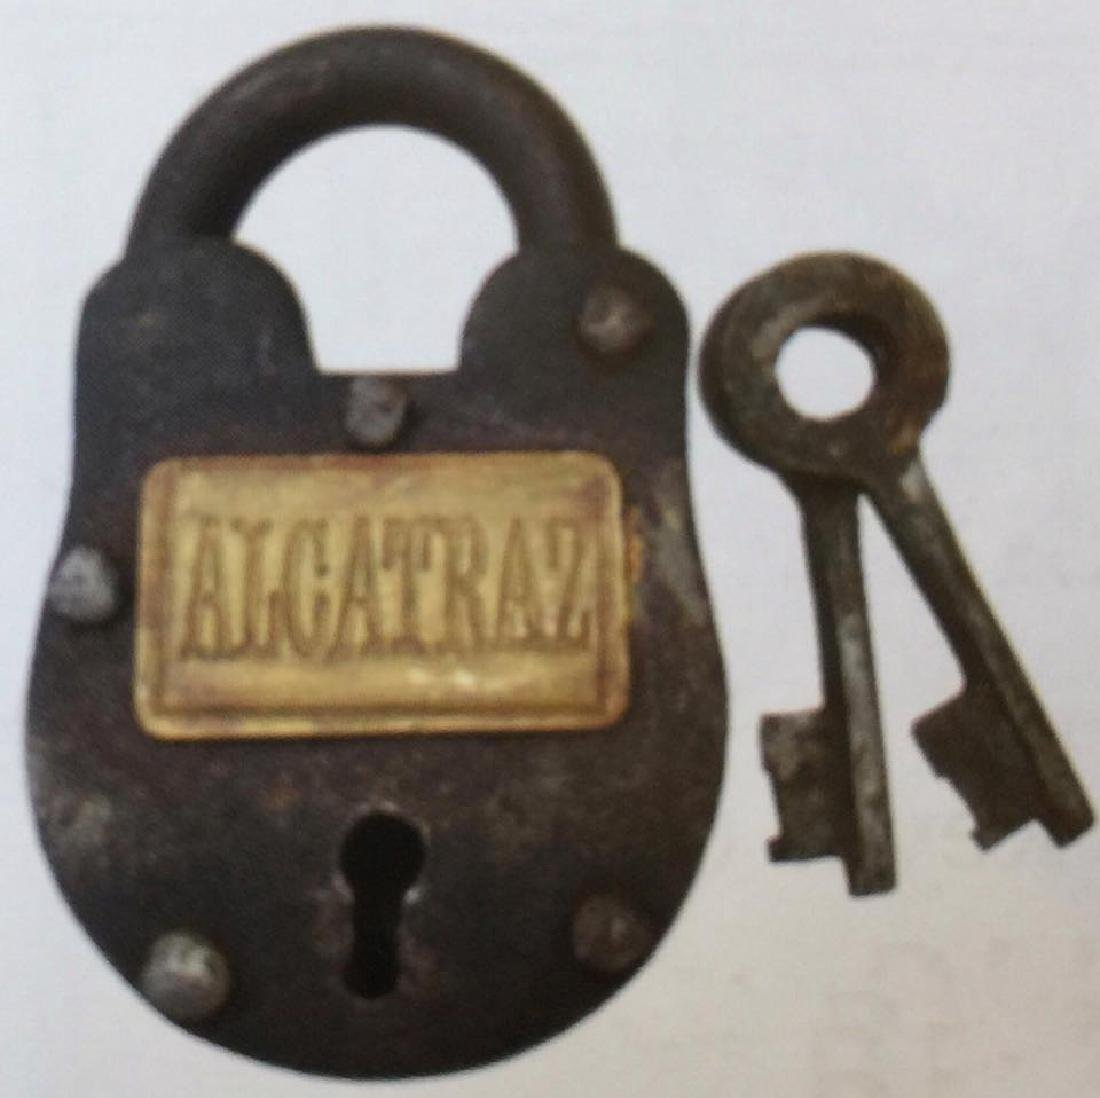 "ALCATRAZ CAST IRON GATE PADLOCK - 2.5"" X 1.5"""